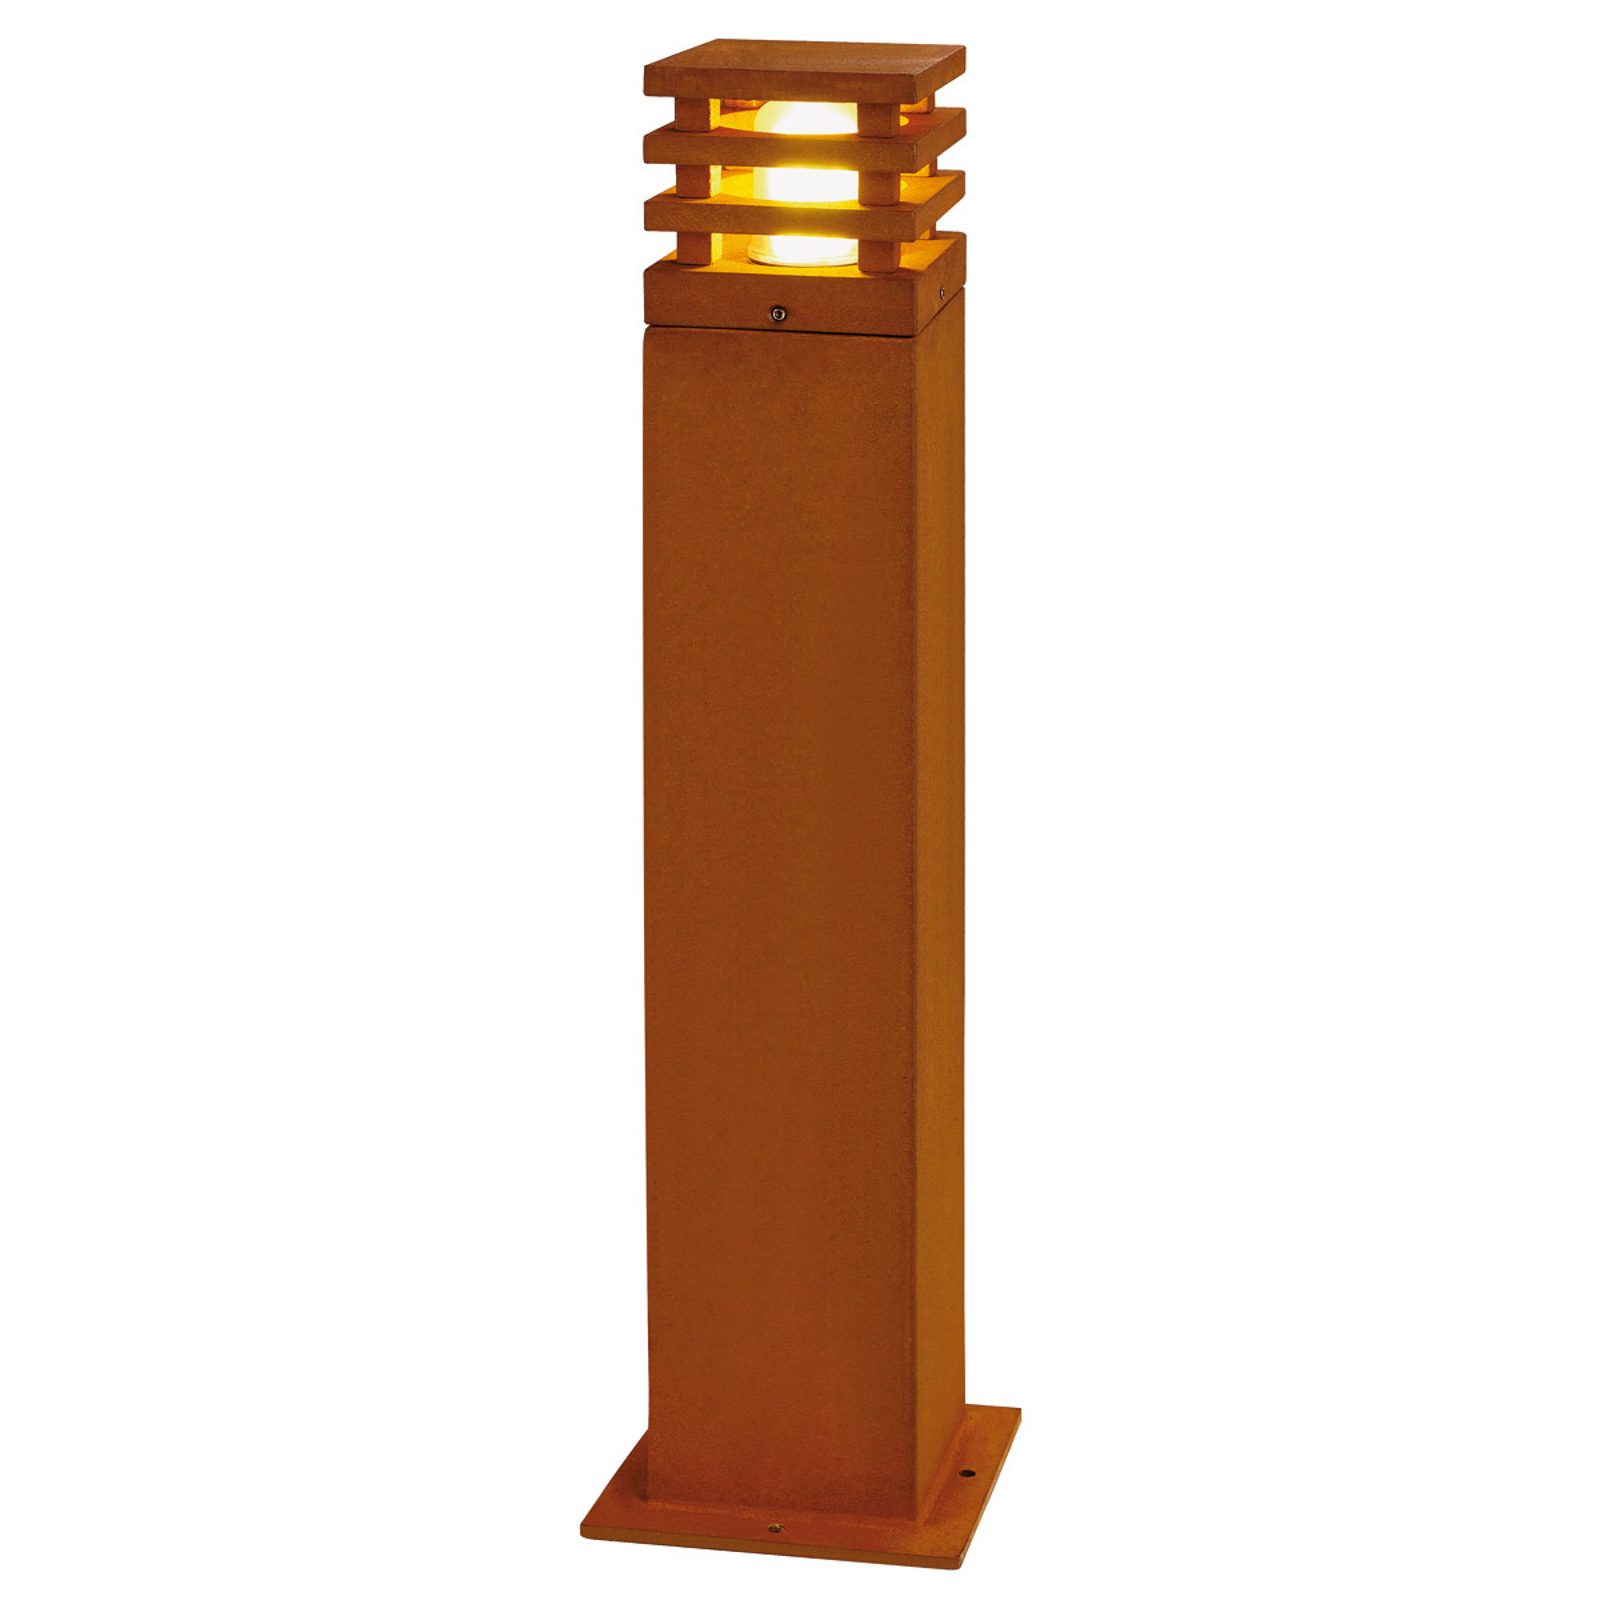 Country-style Rusty LED path light, square_5504663_1